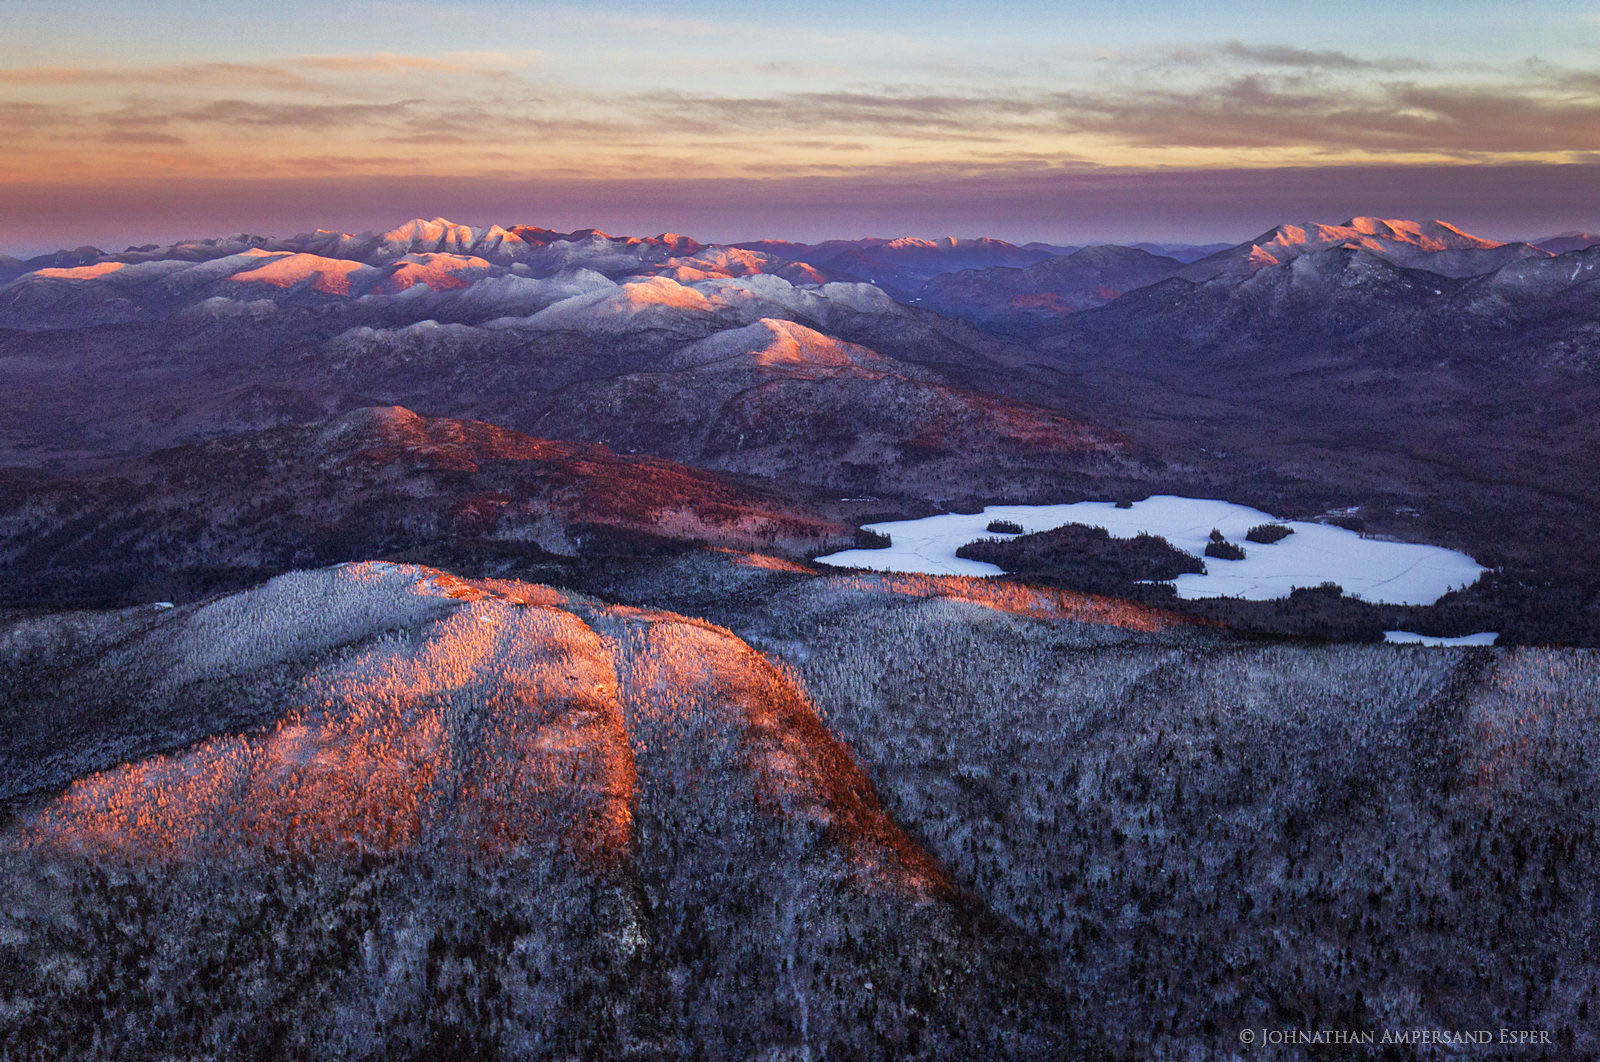 Ampersand Mt,Ampersand Mountain,Ampersand Lake,Seward Range,High Peaks,Adirondacks,winter,alpenglow,sunset,aerial,cold,Adirondack Park,, photo